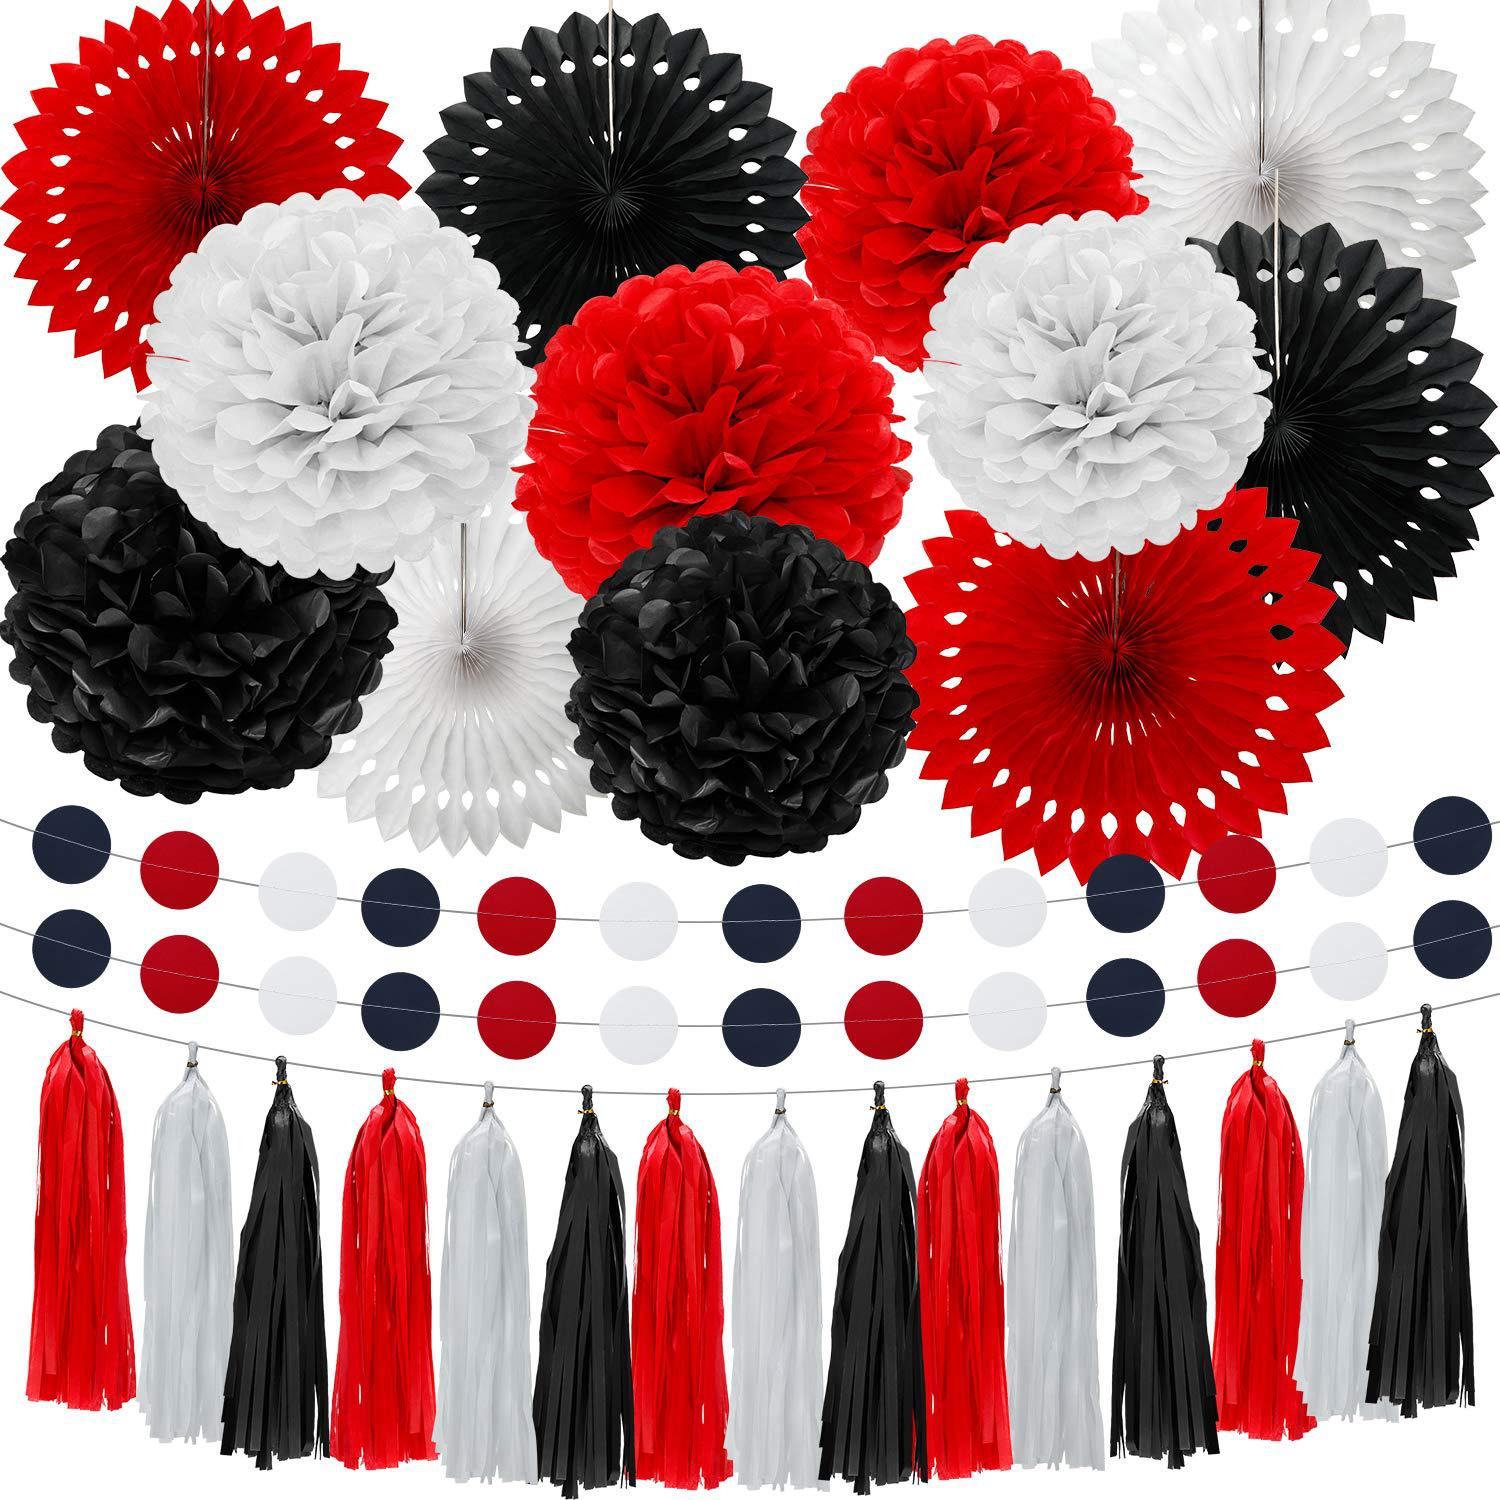 Red White Black Tissue Paper PomPoms Flowers Ball Hollow Fans Tassel Garland Dots Graduation Ceremony Party Decoration Set